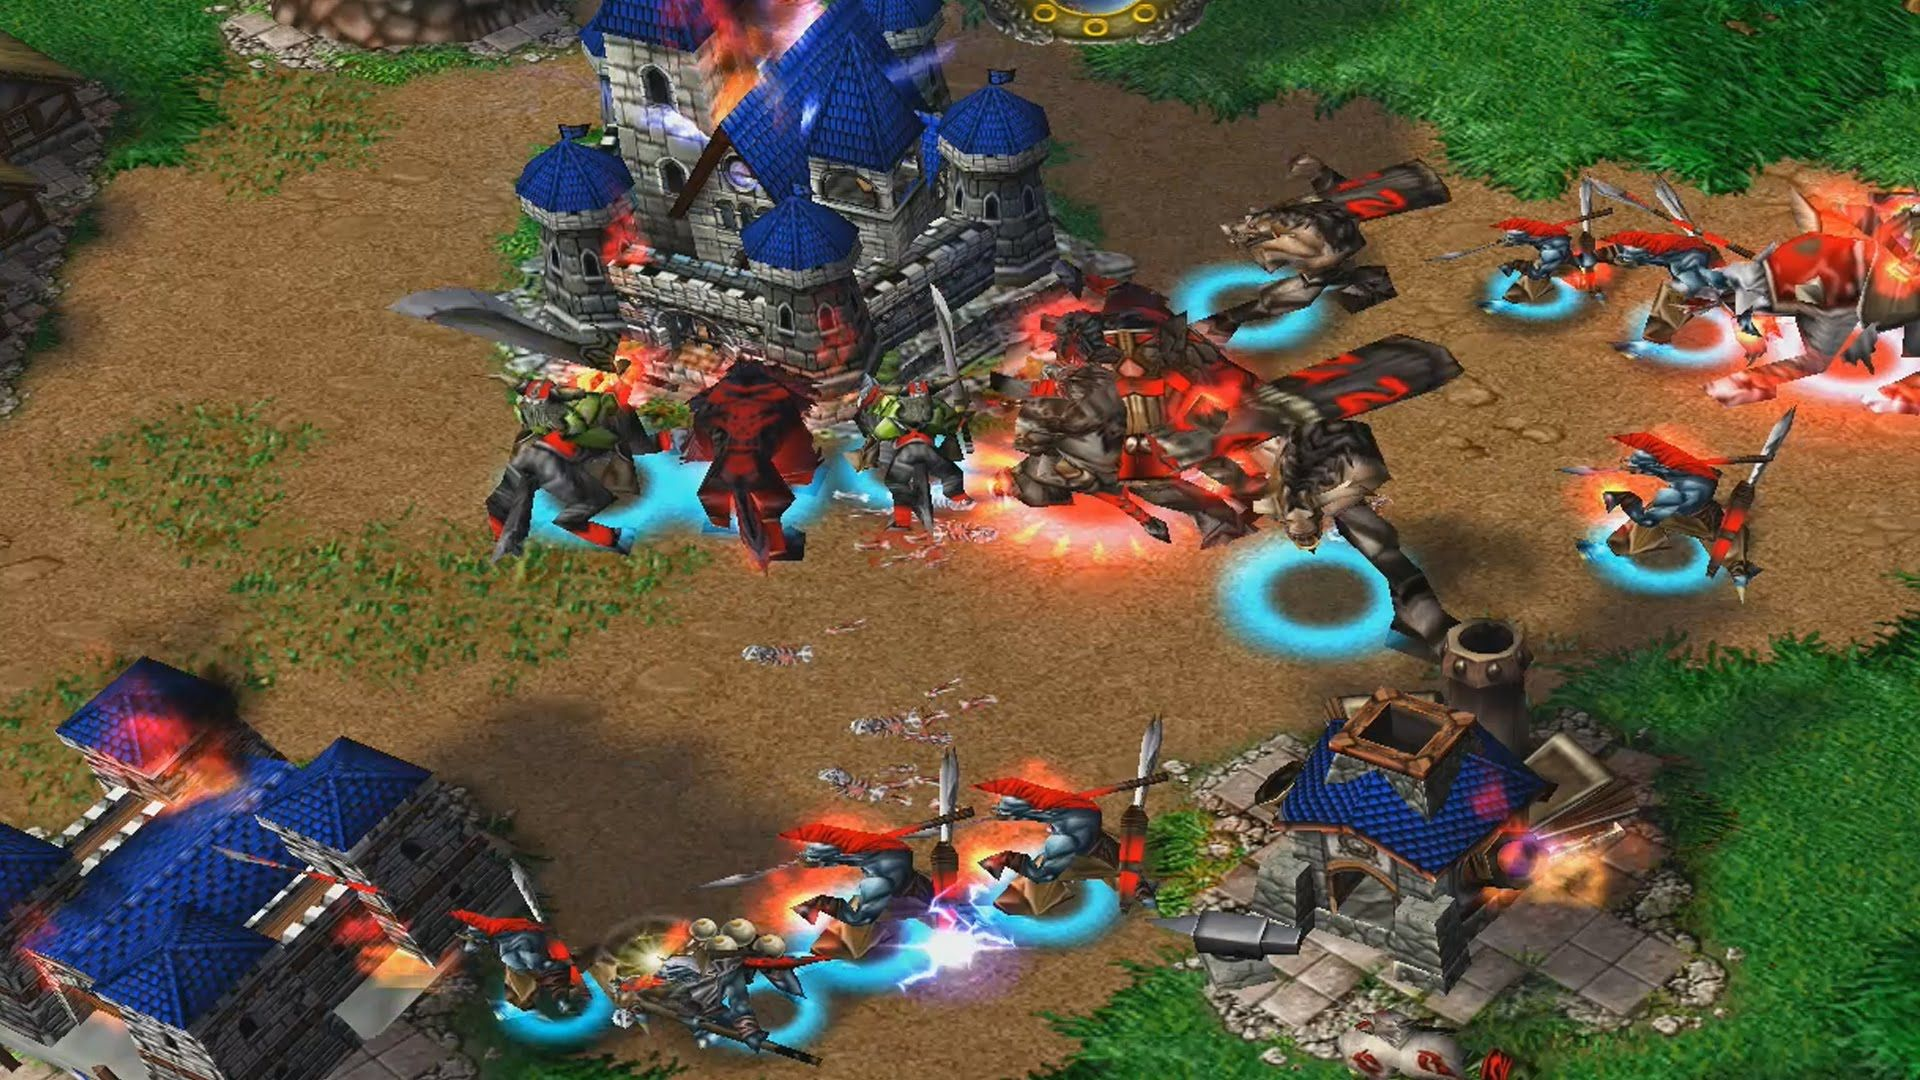 Pin by Topalternatives on Games Warcraft iii, Warcraft